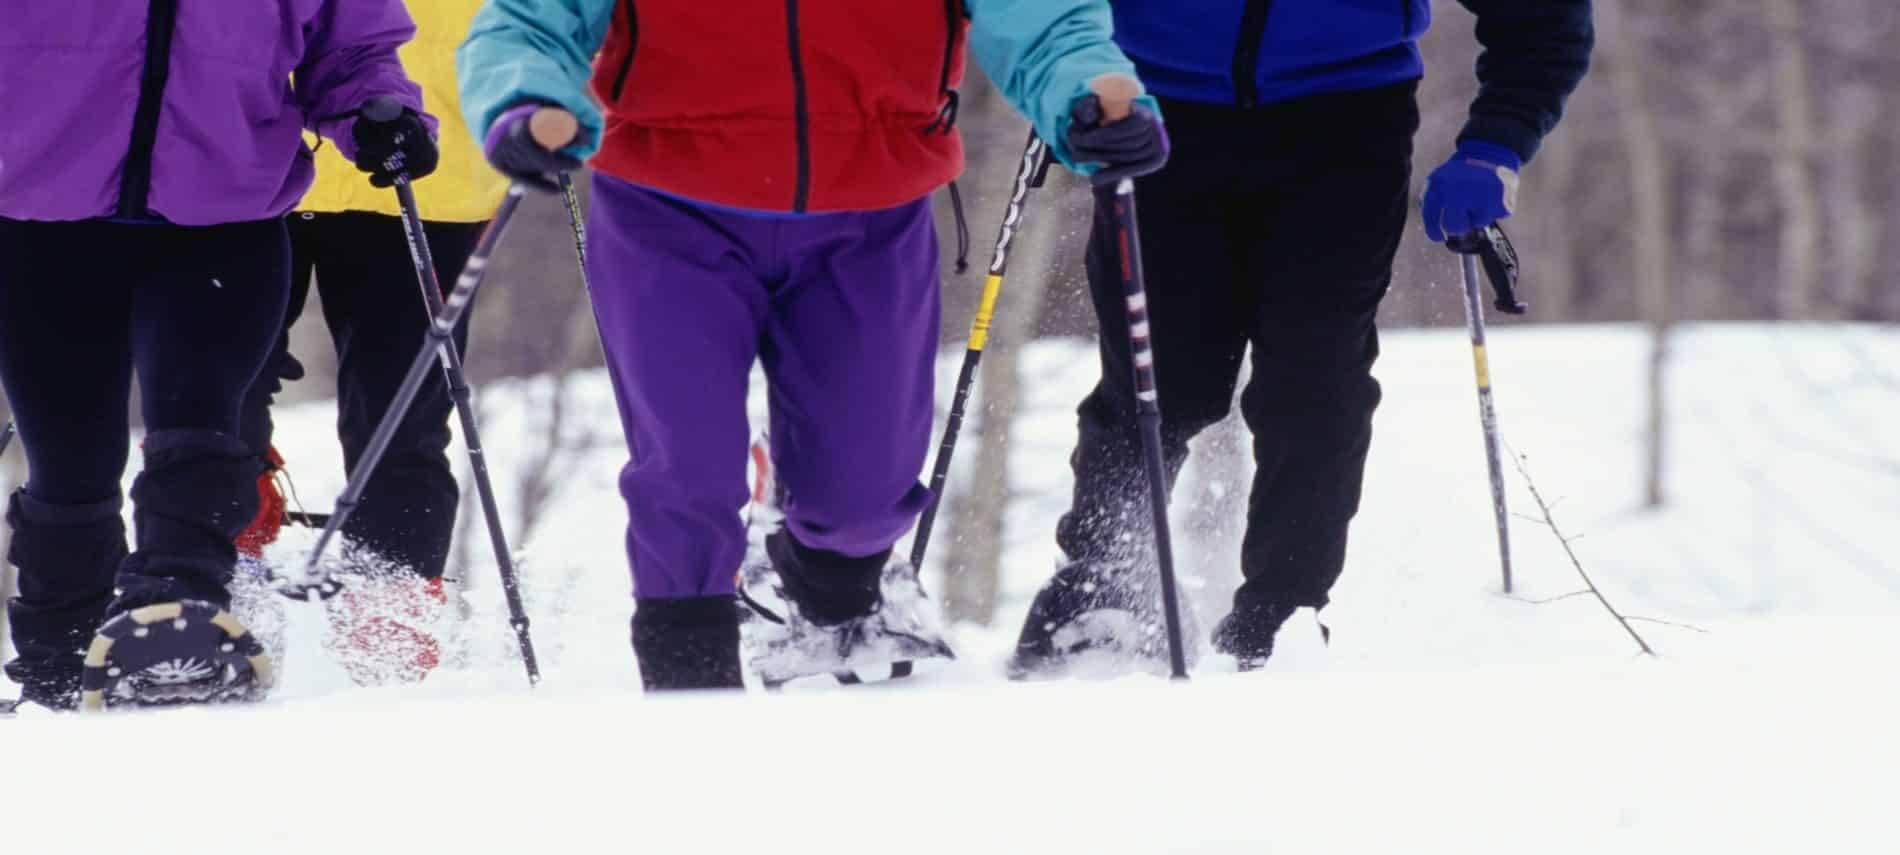 four people snowshoeing wearing colorful outdoor gear holding poles